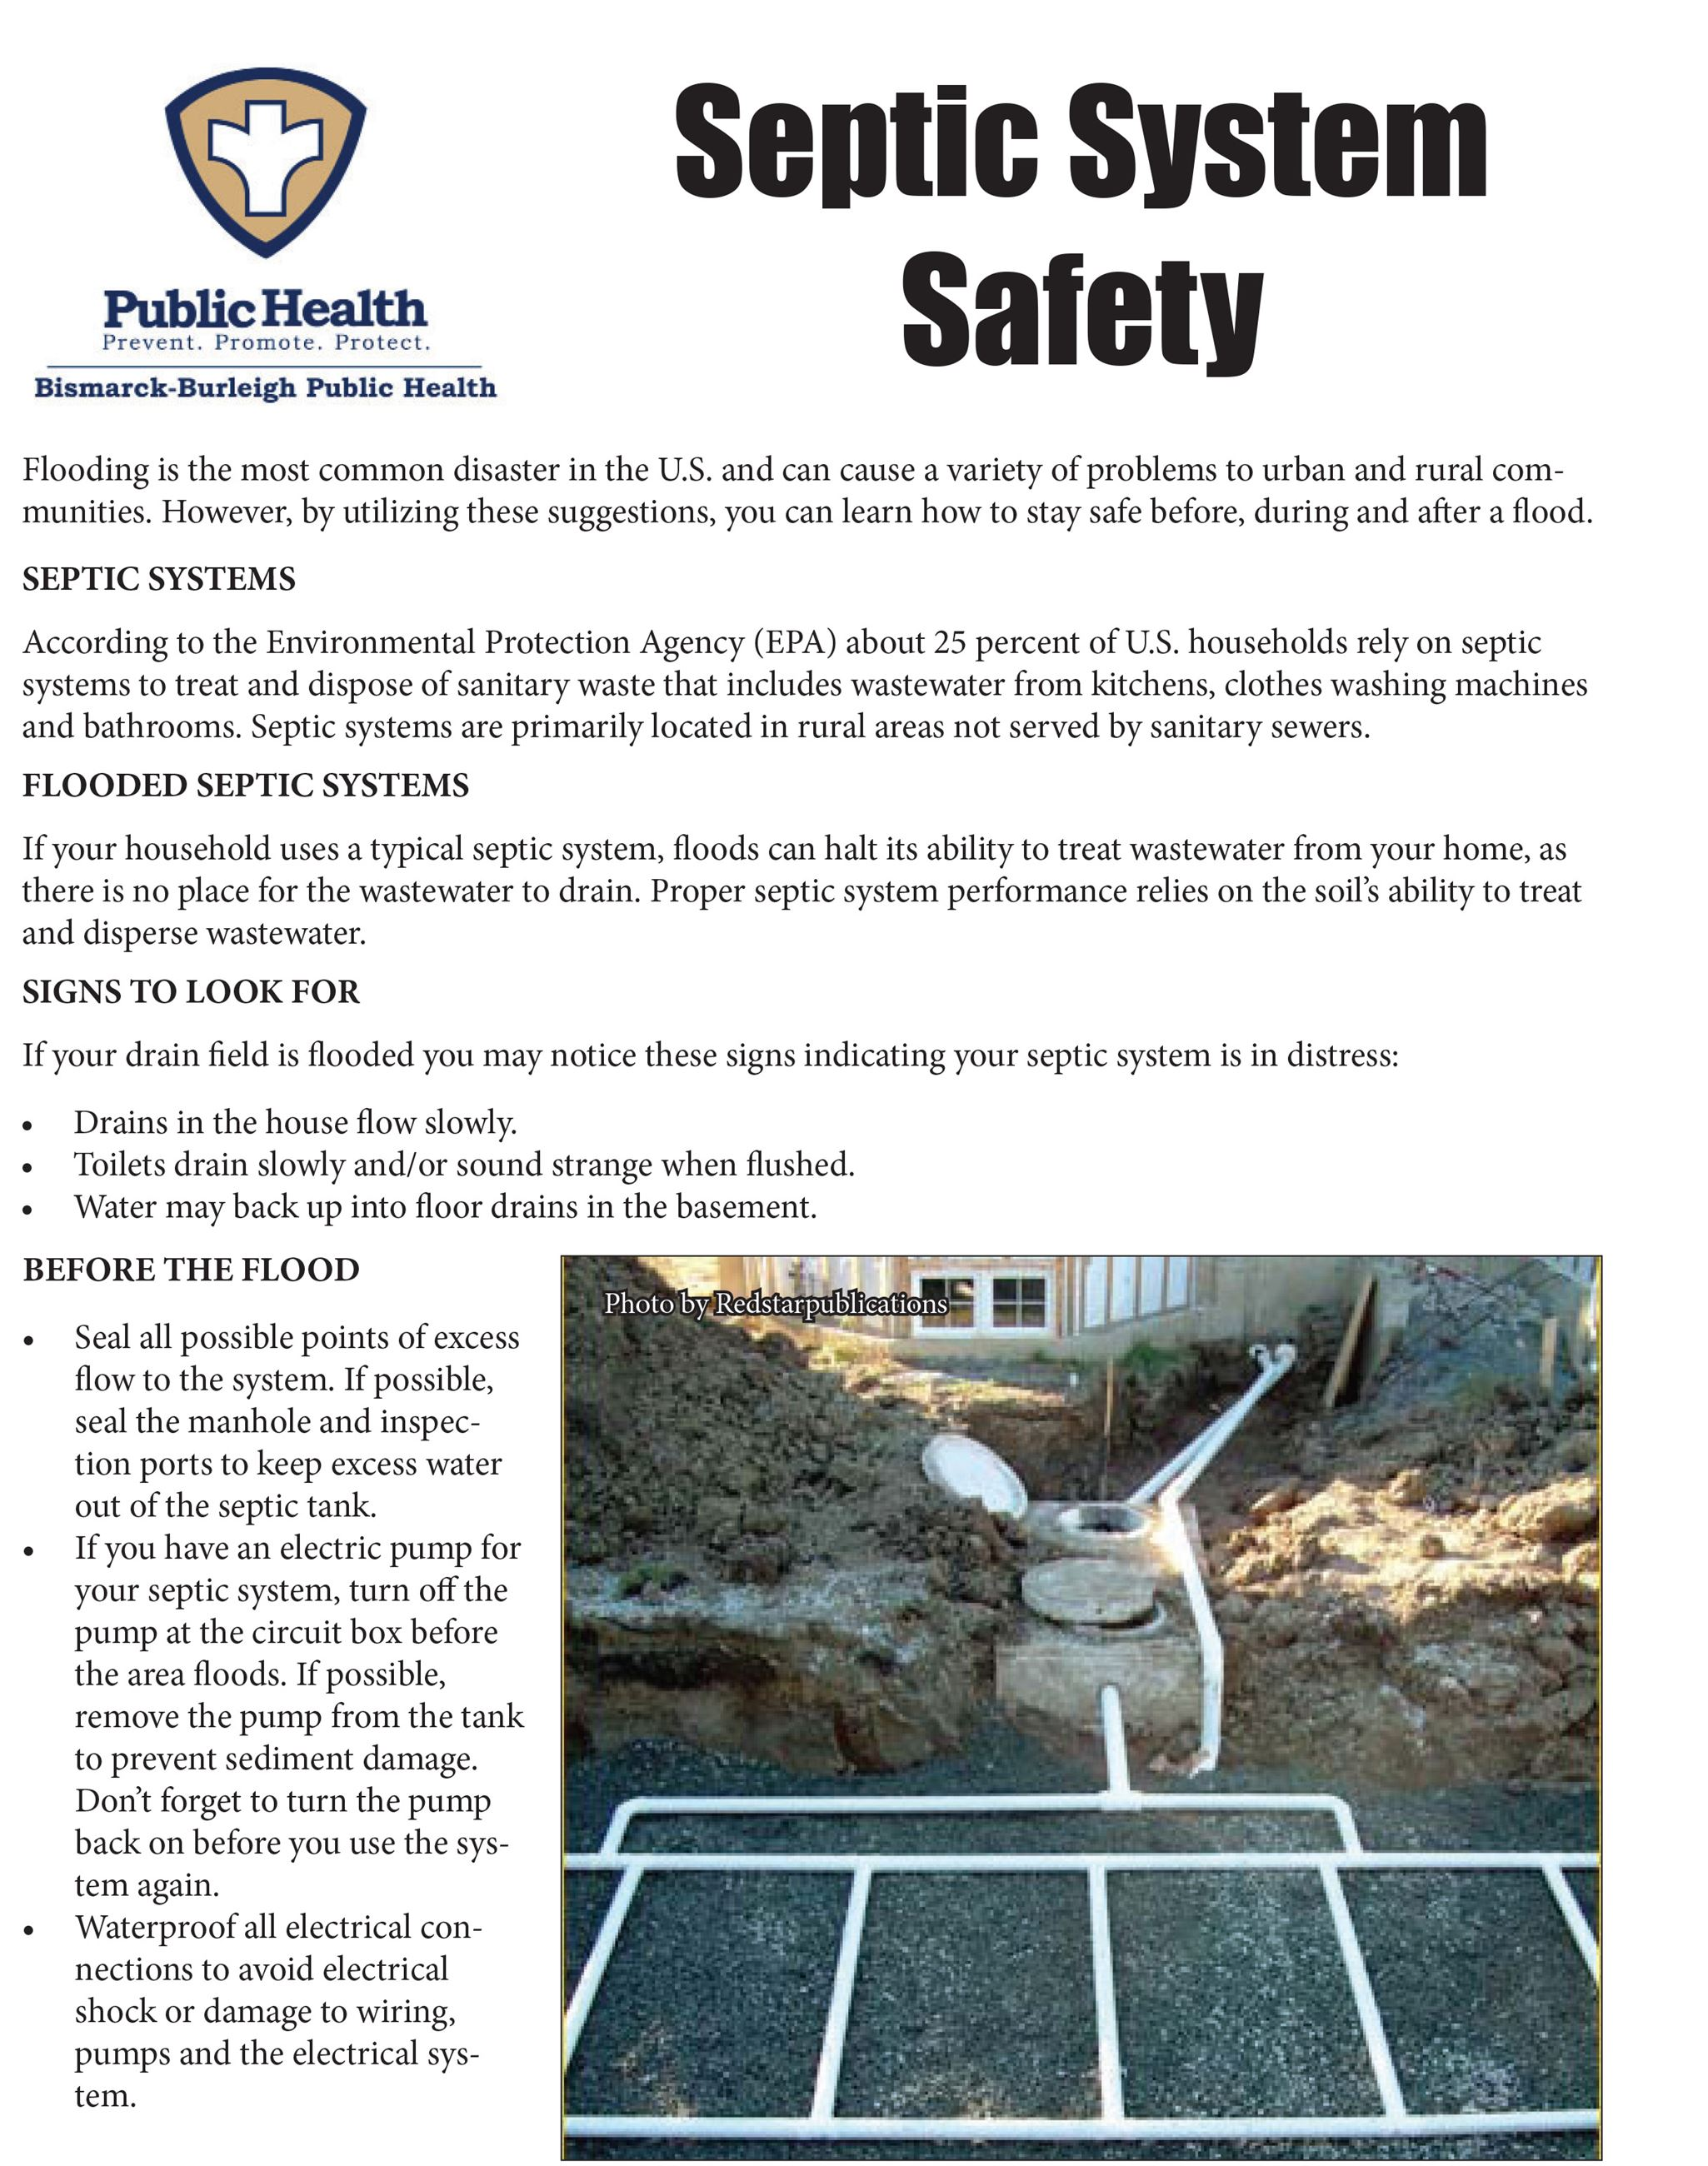 Septic System Safety BBPH-1